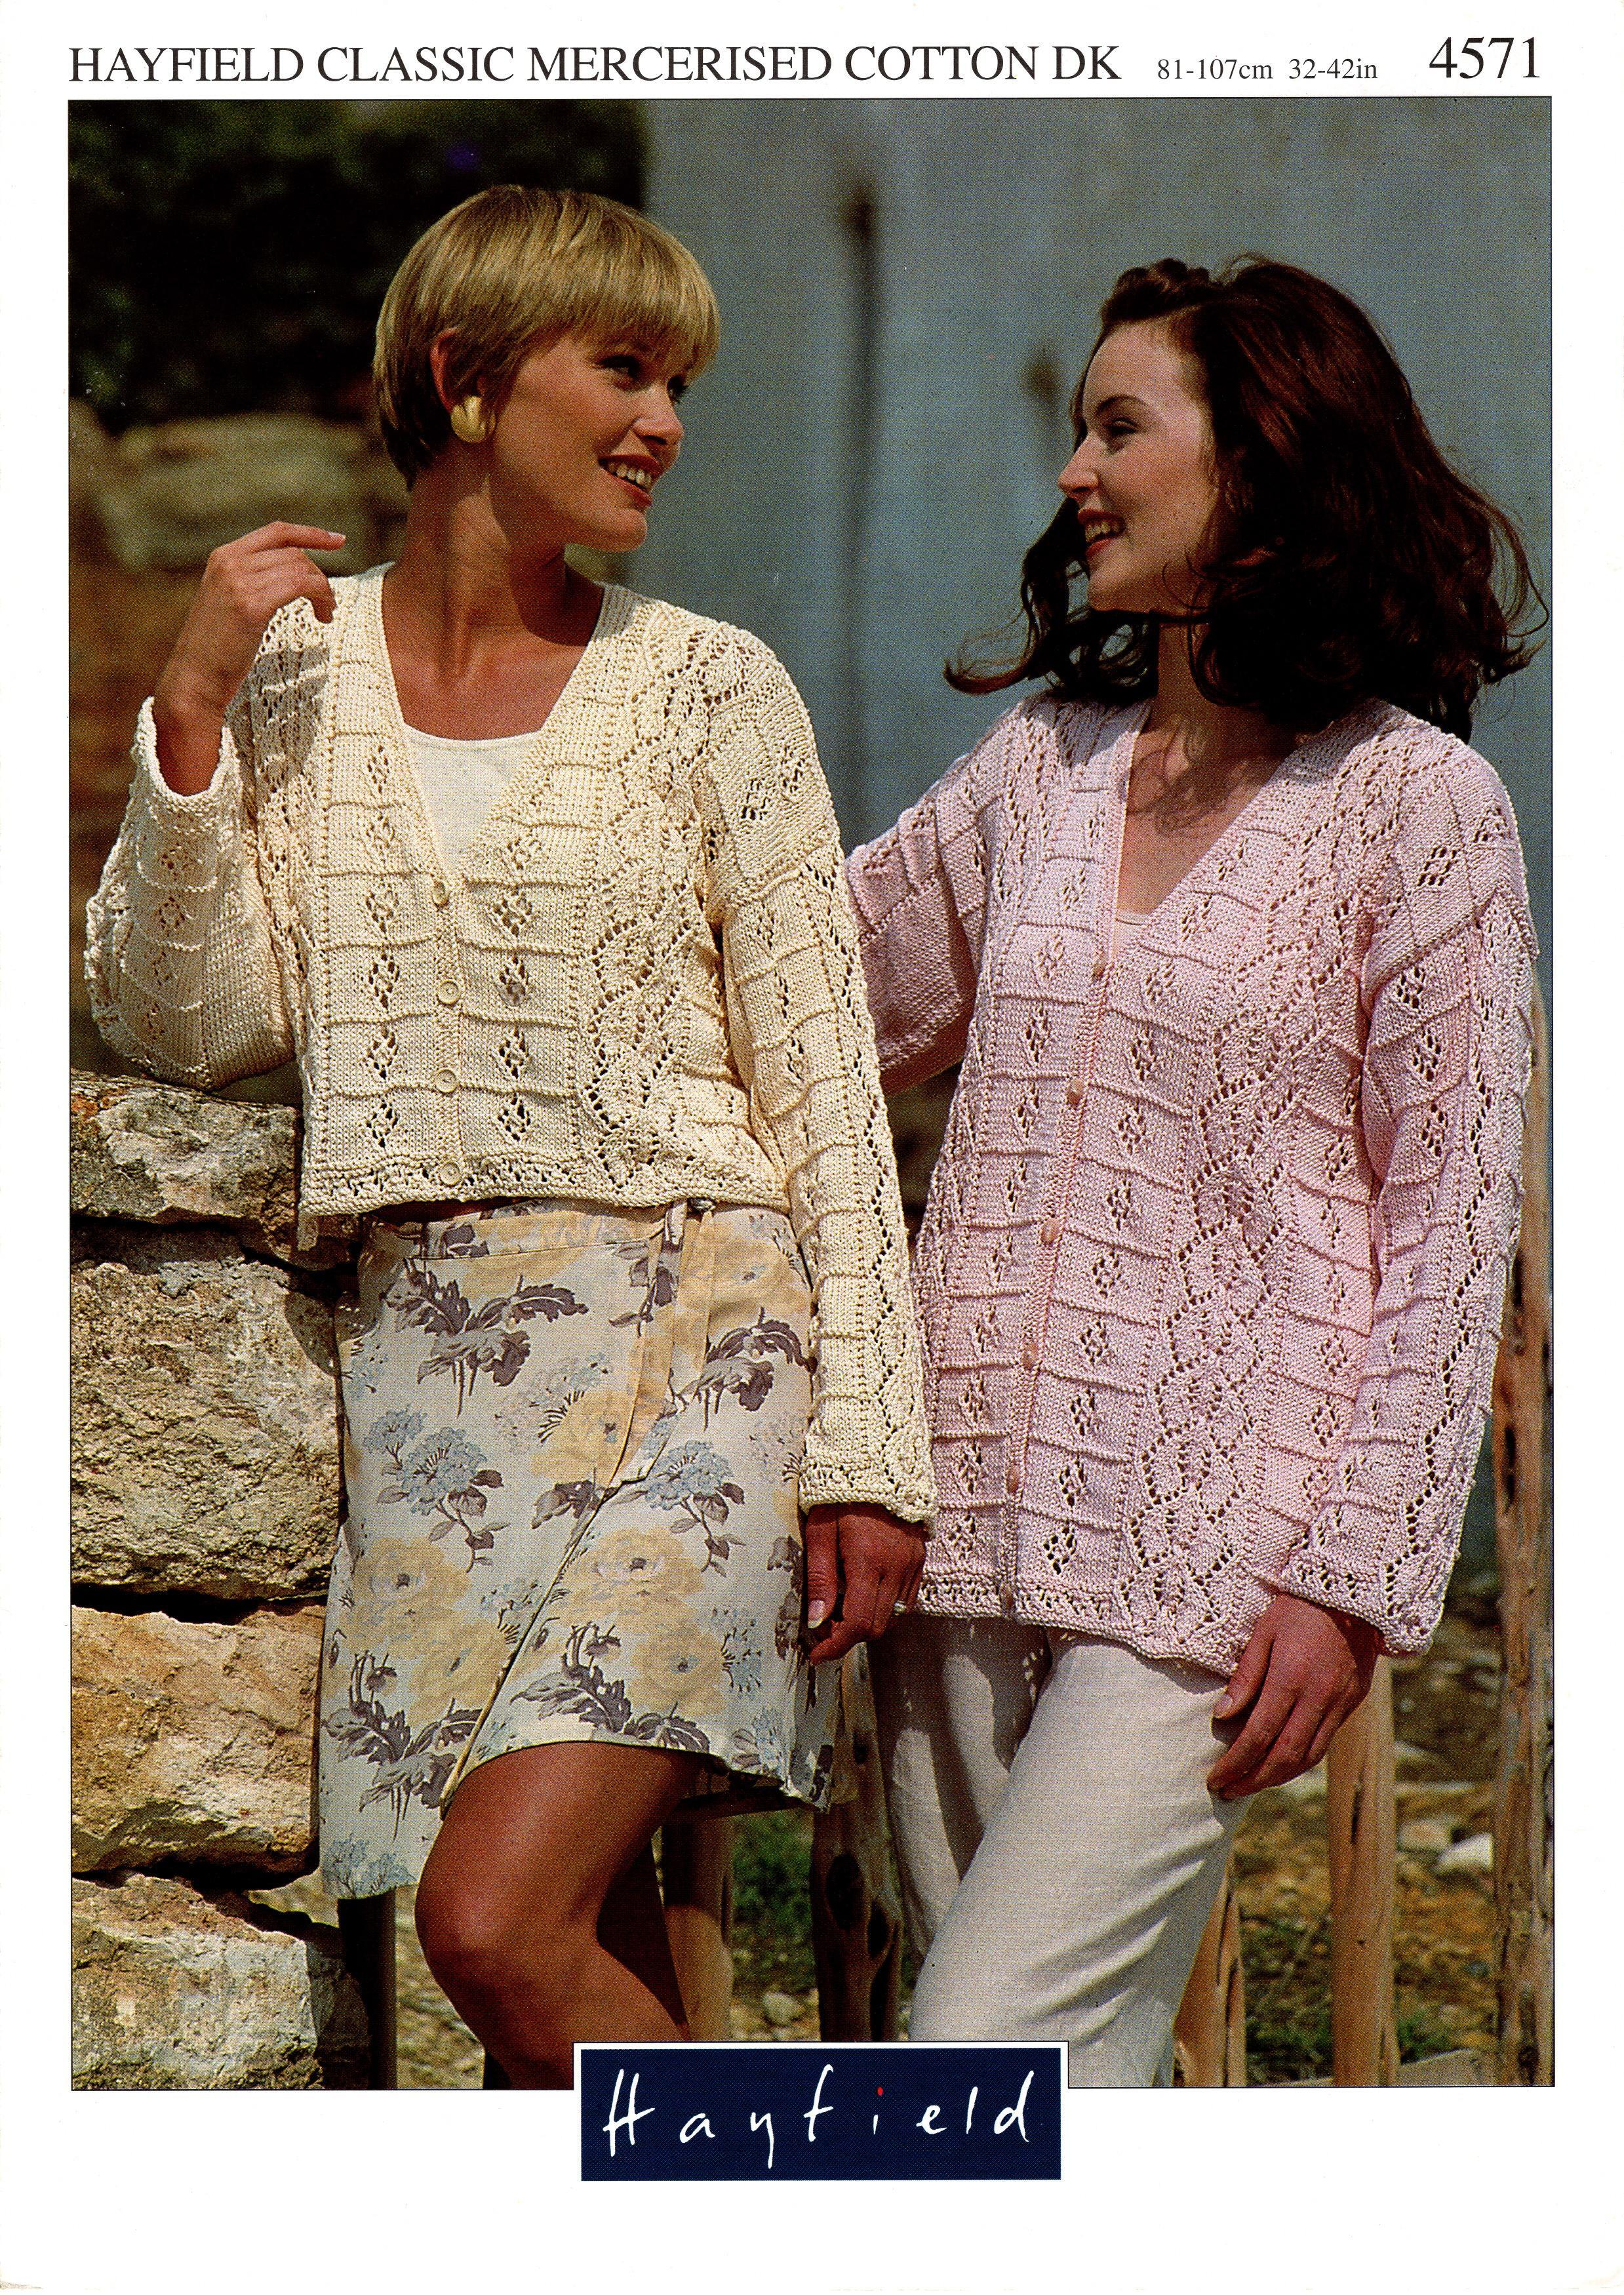 Hayfield Knitting Pattern Booklet No.4571 00030